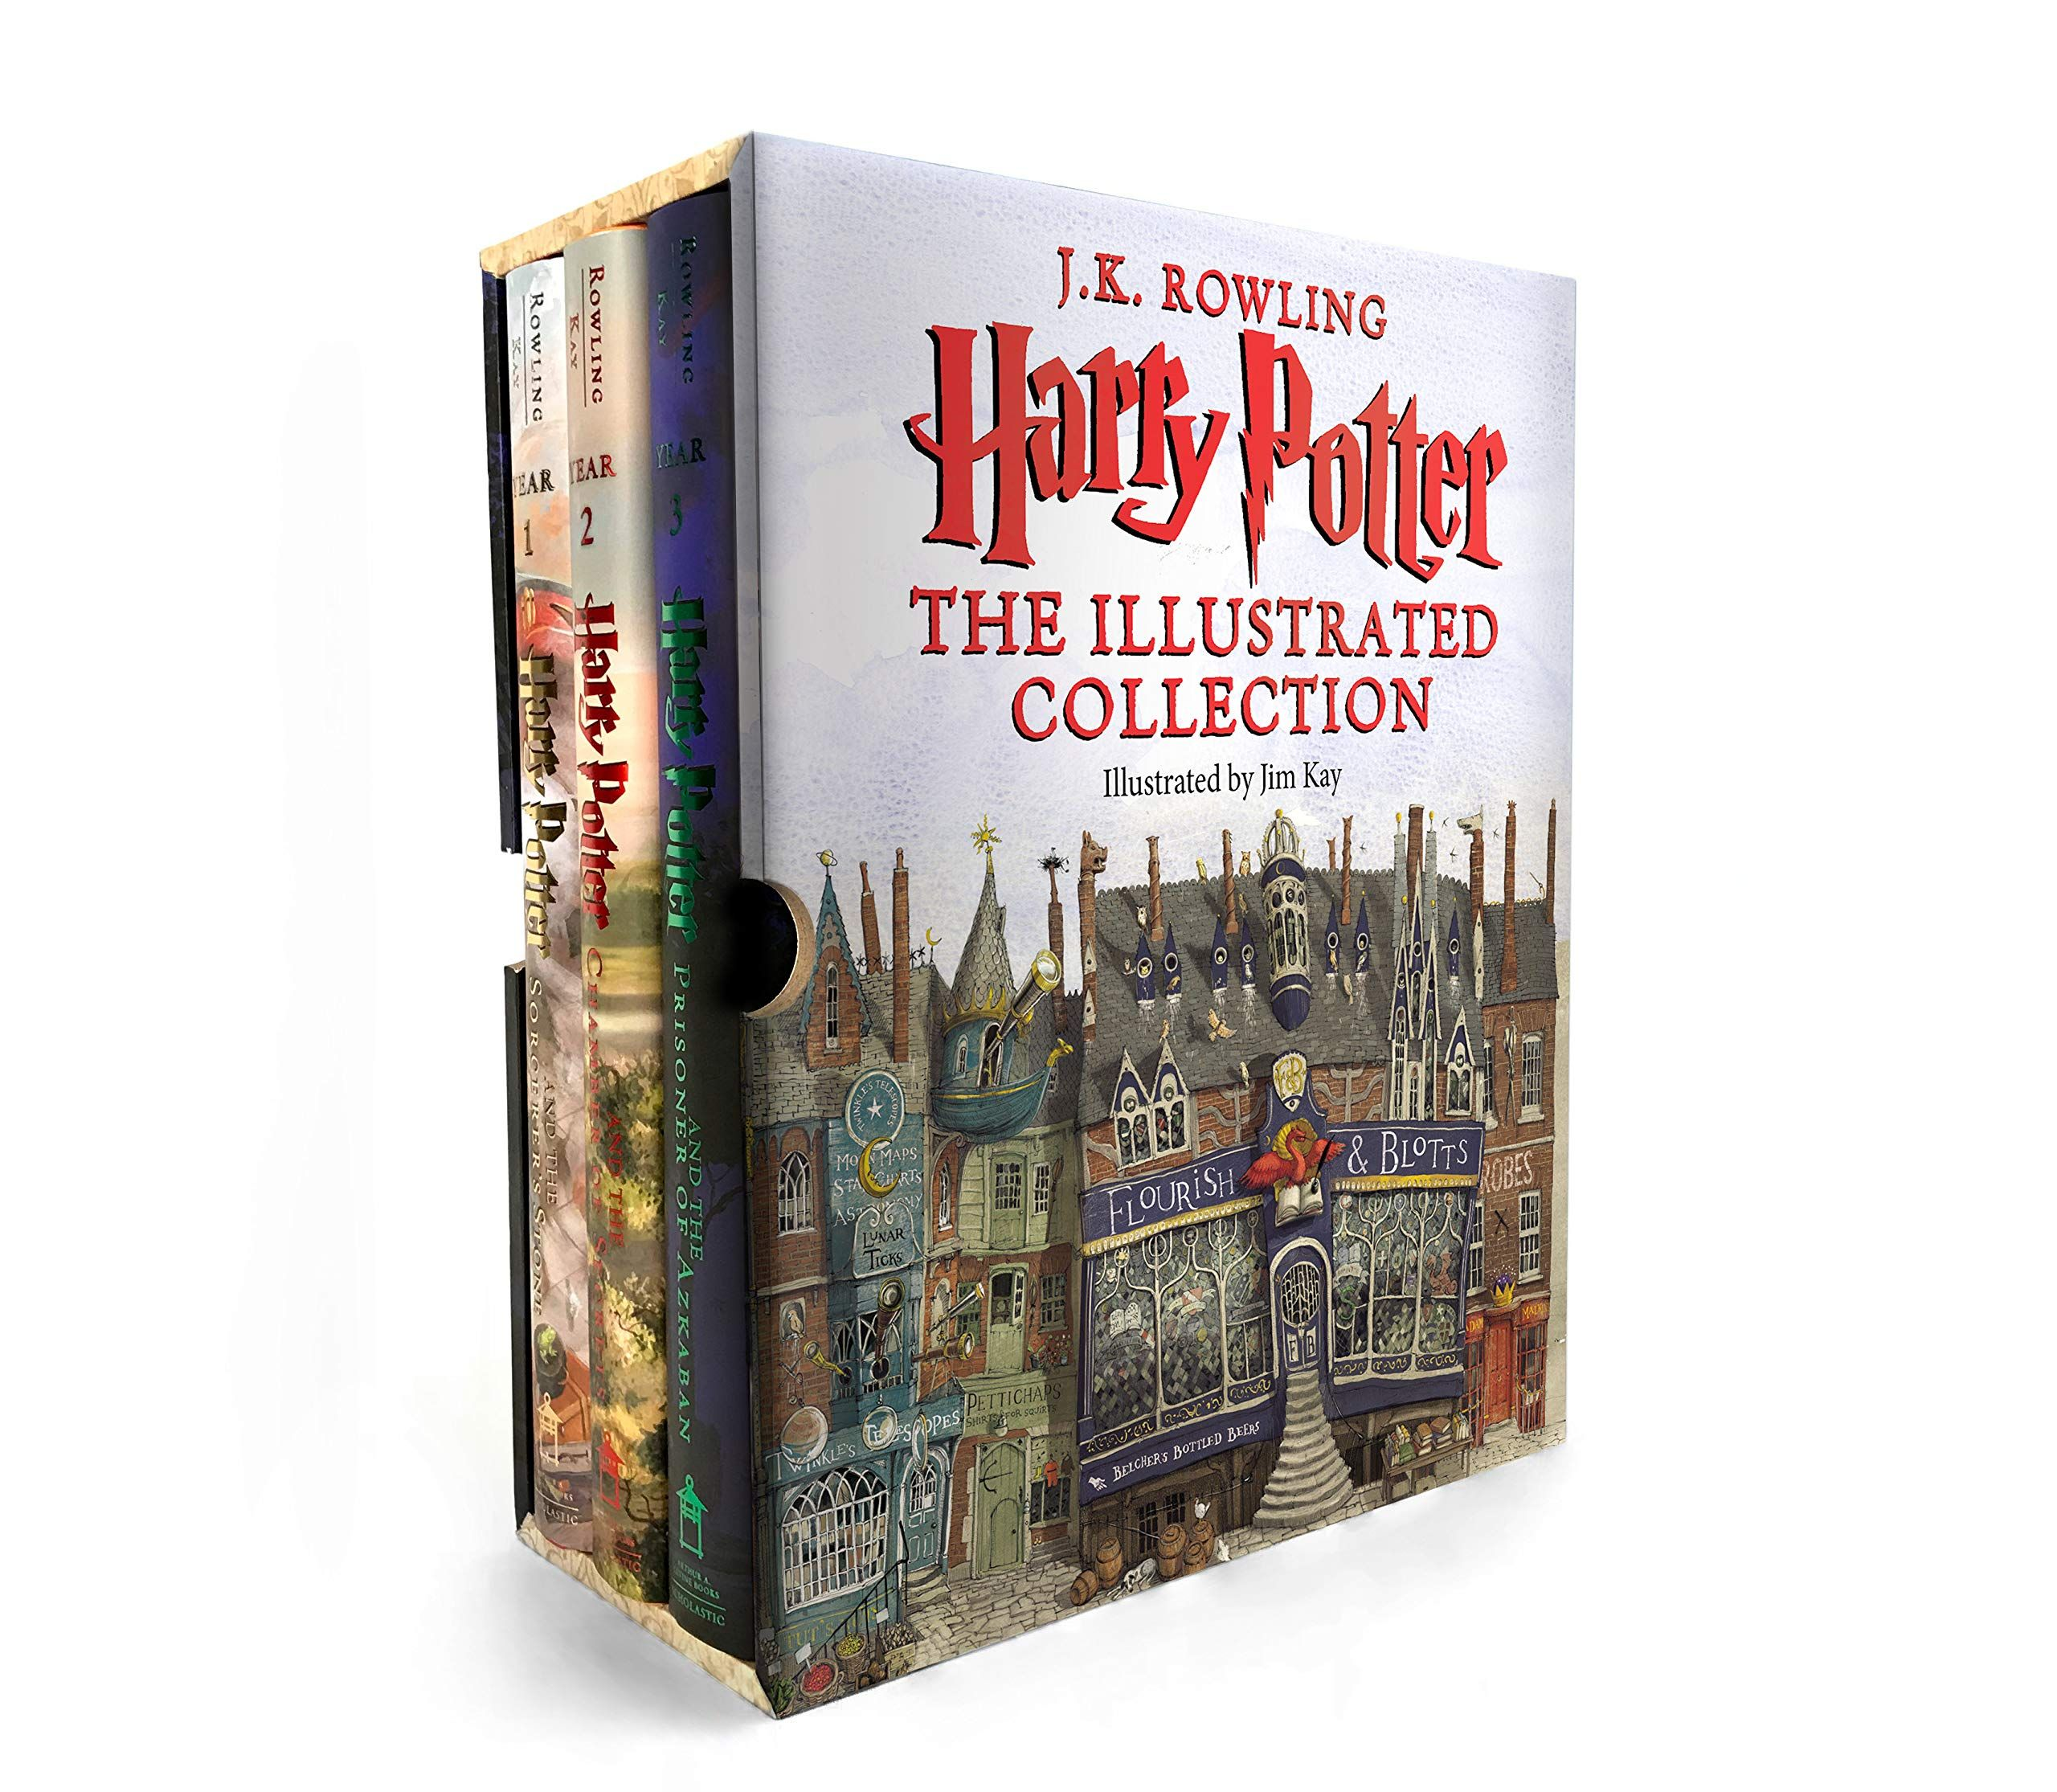 Harry Potter The Illustrated Collection Books 1 3 Boxed Set By Jk Rowling In 2020 Harry Potter Illustrations Harry Potter Gifts Harry Potter Books